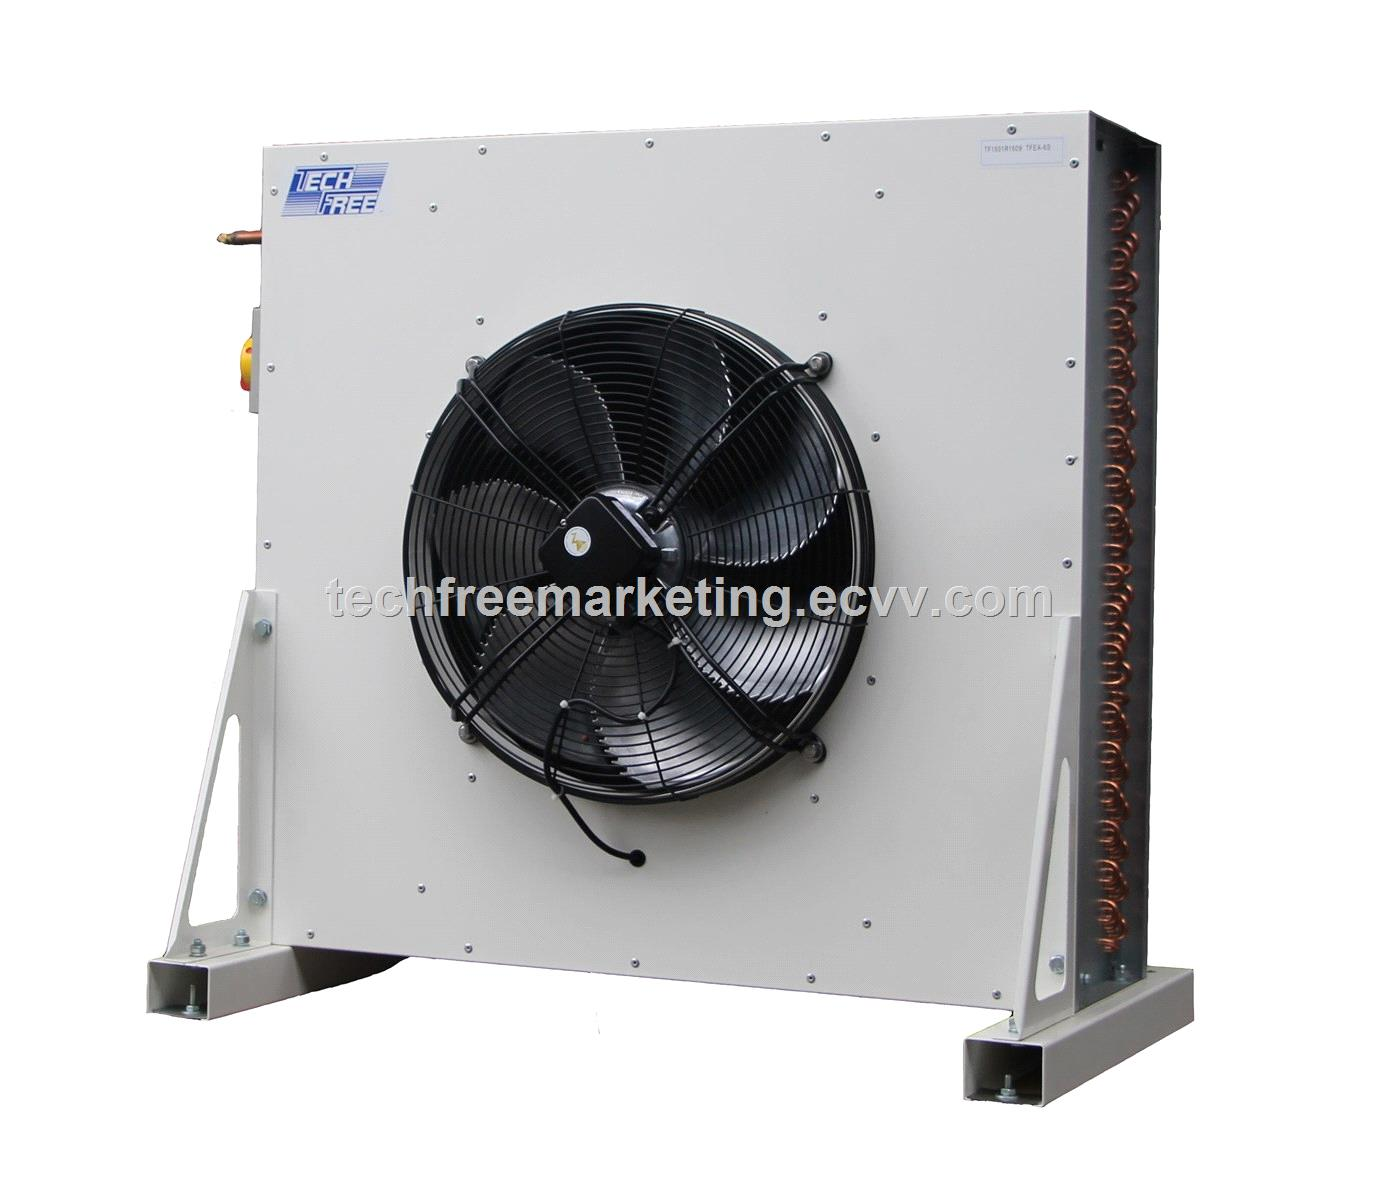 fresh air exhaust fan unit high capacity purchasing, souring agent